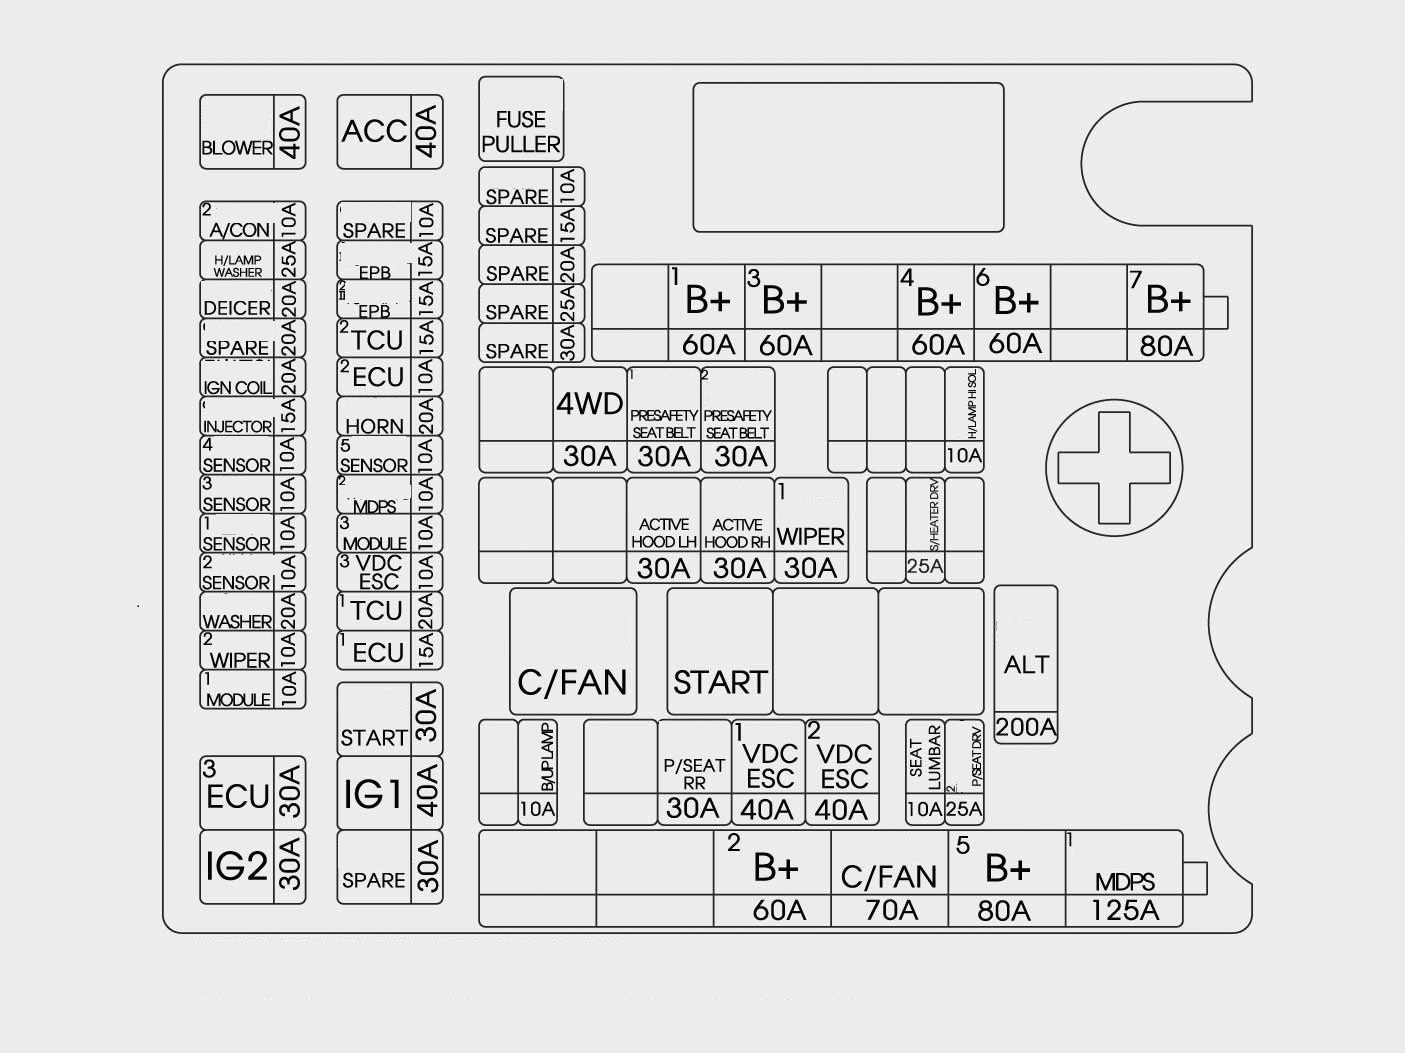 Santa Fe Engine Diagram Of 2009 Wiring Library Hyundai Atos Fuse Box 2010